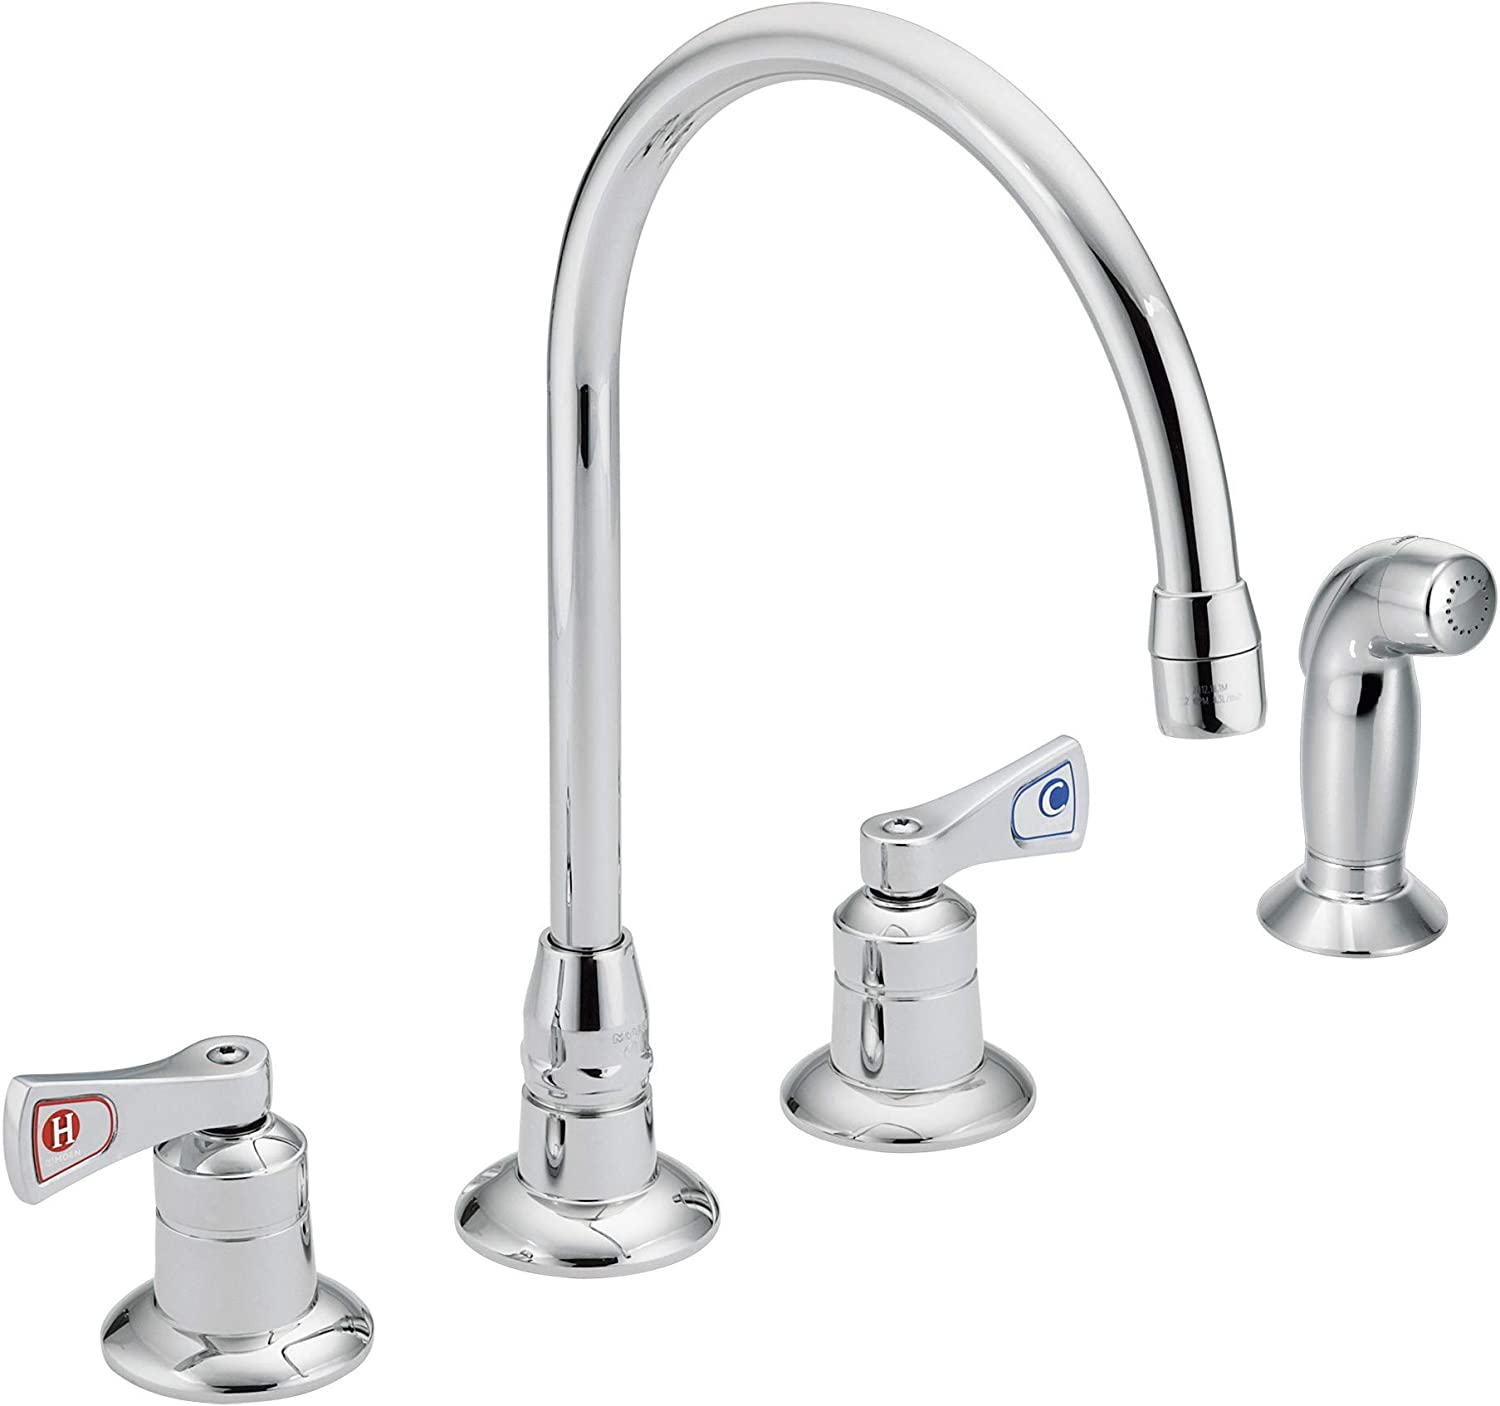 Moen 8242 Commercial M Dura Kitchen Faucet With Side Spray With 2 5 Inch Handles 2 2 Gpm Chrome Touch On Kitchen Sink Faucets Amazon Com